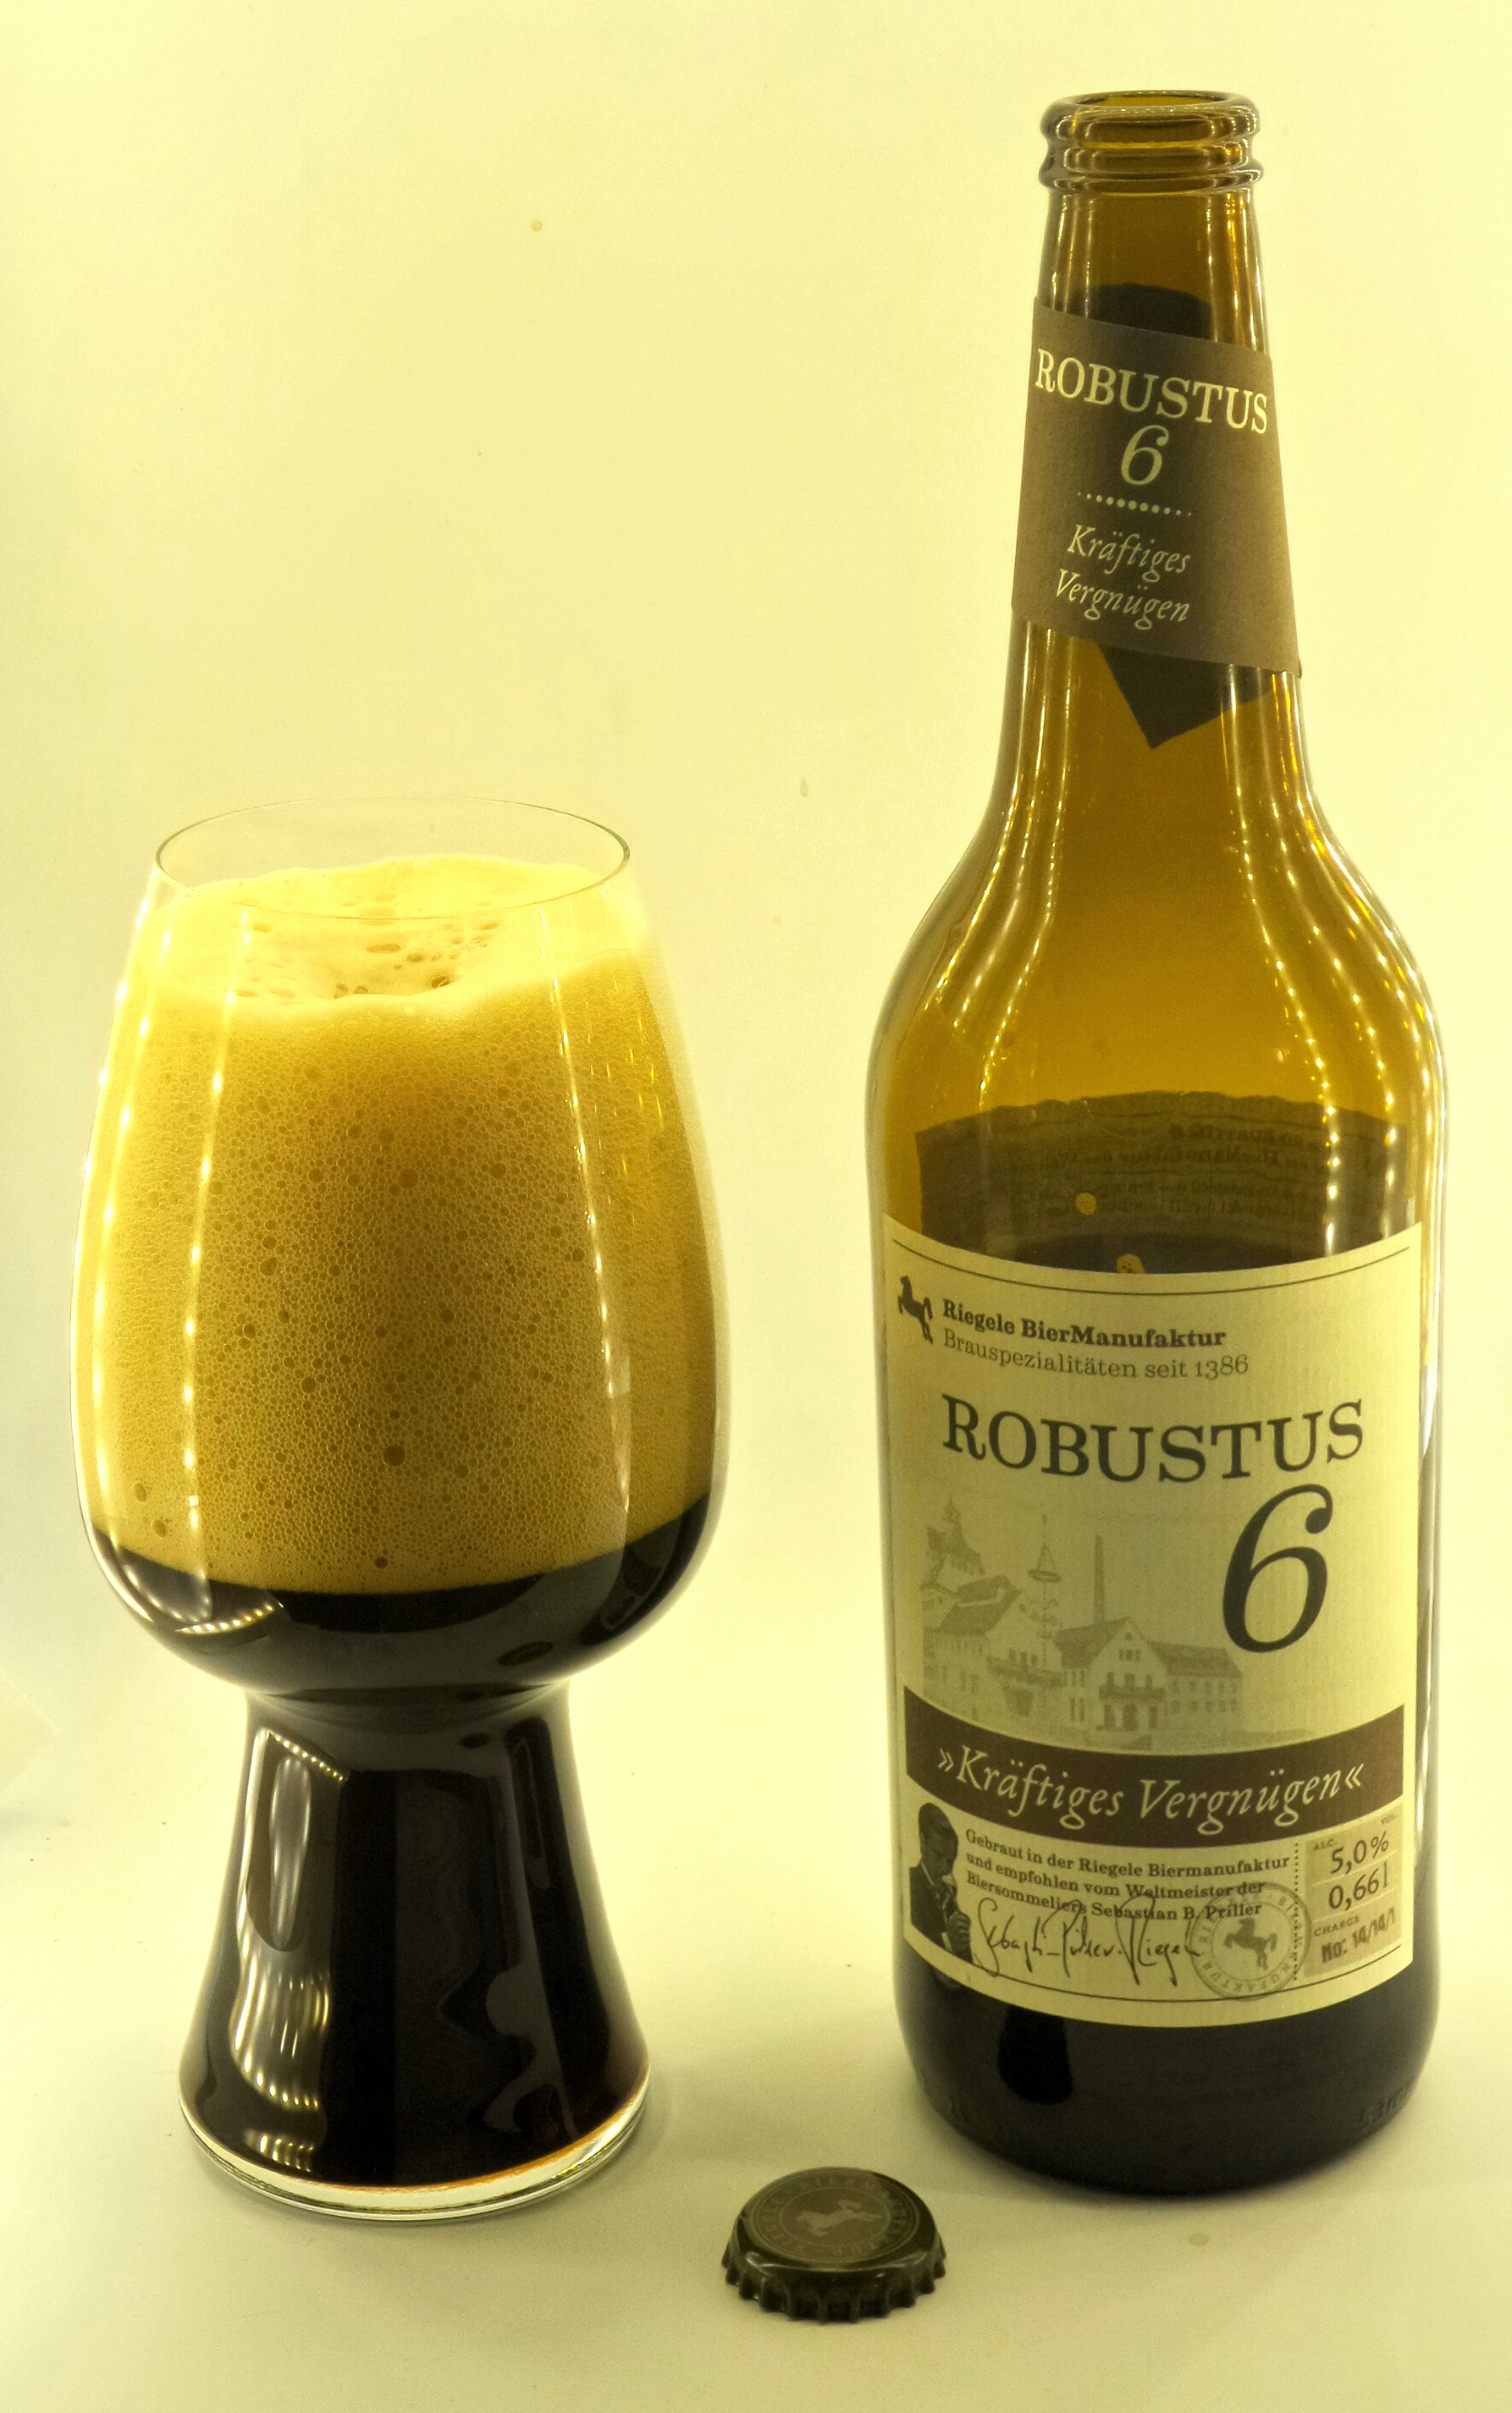 Riegele BierManufaktur Robustus 6